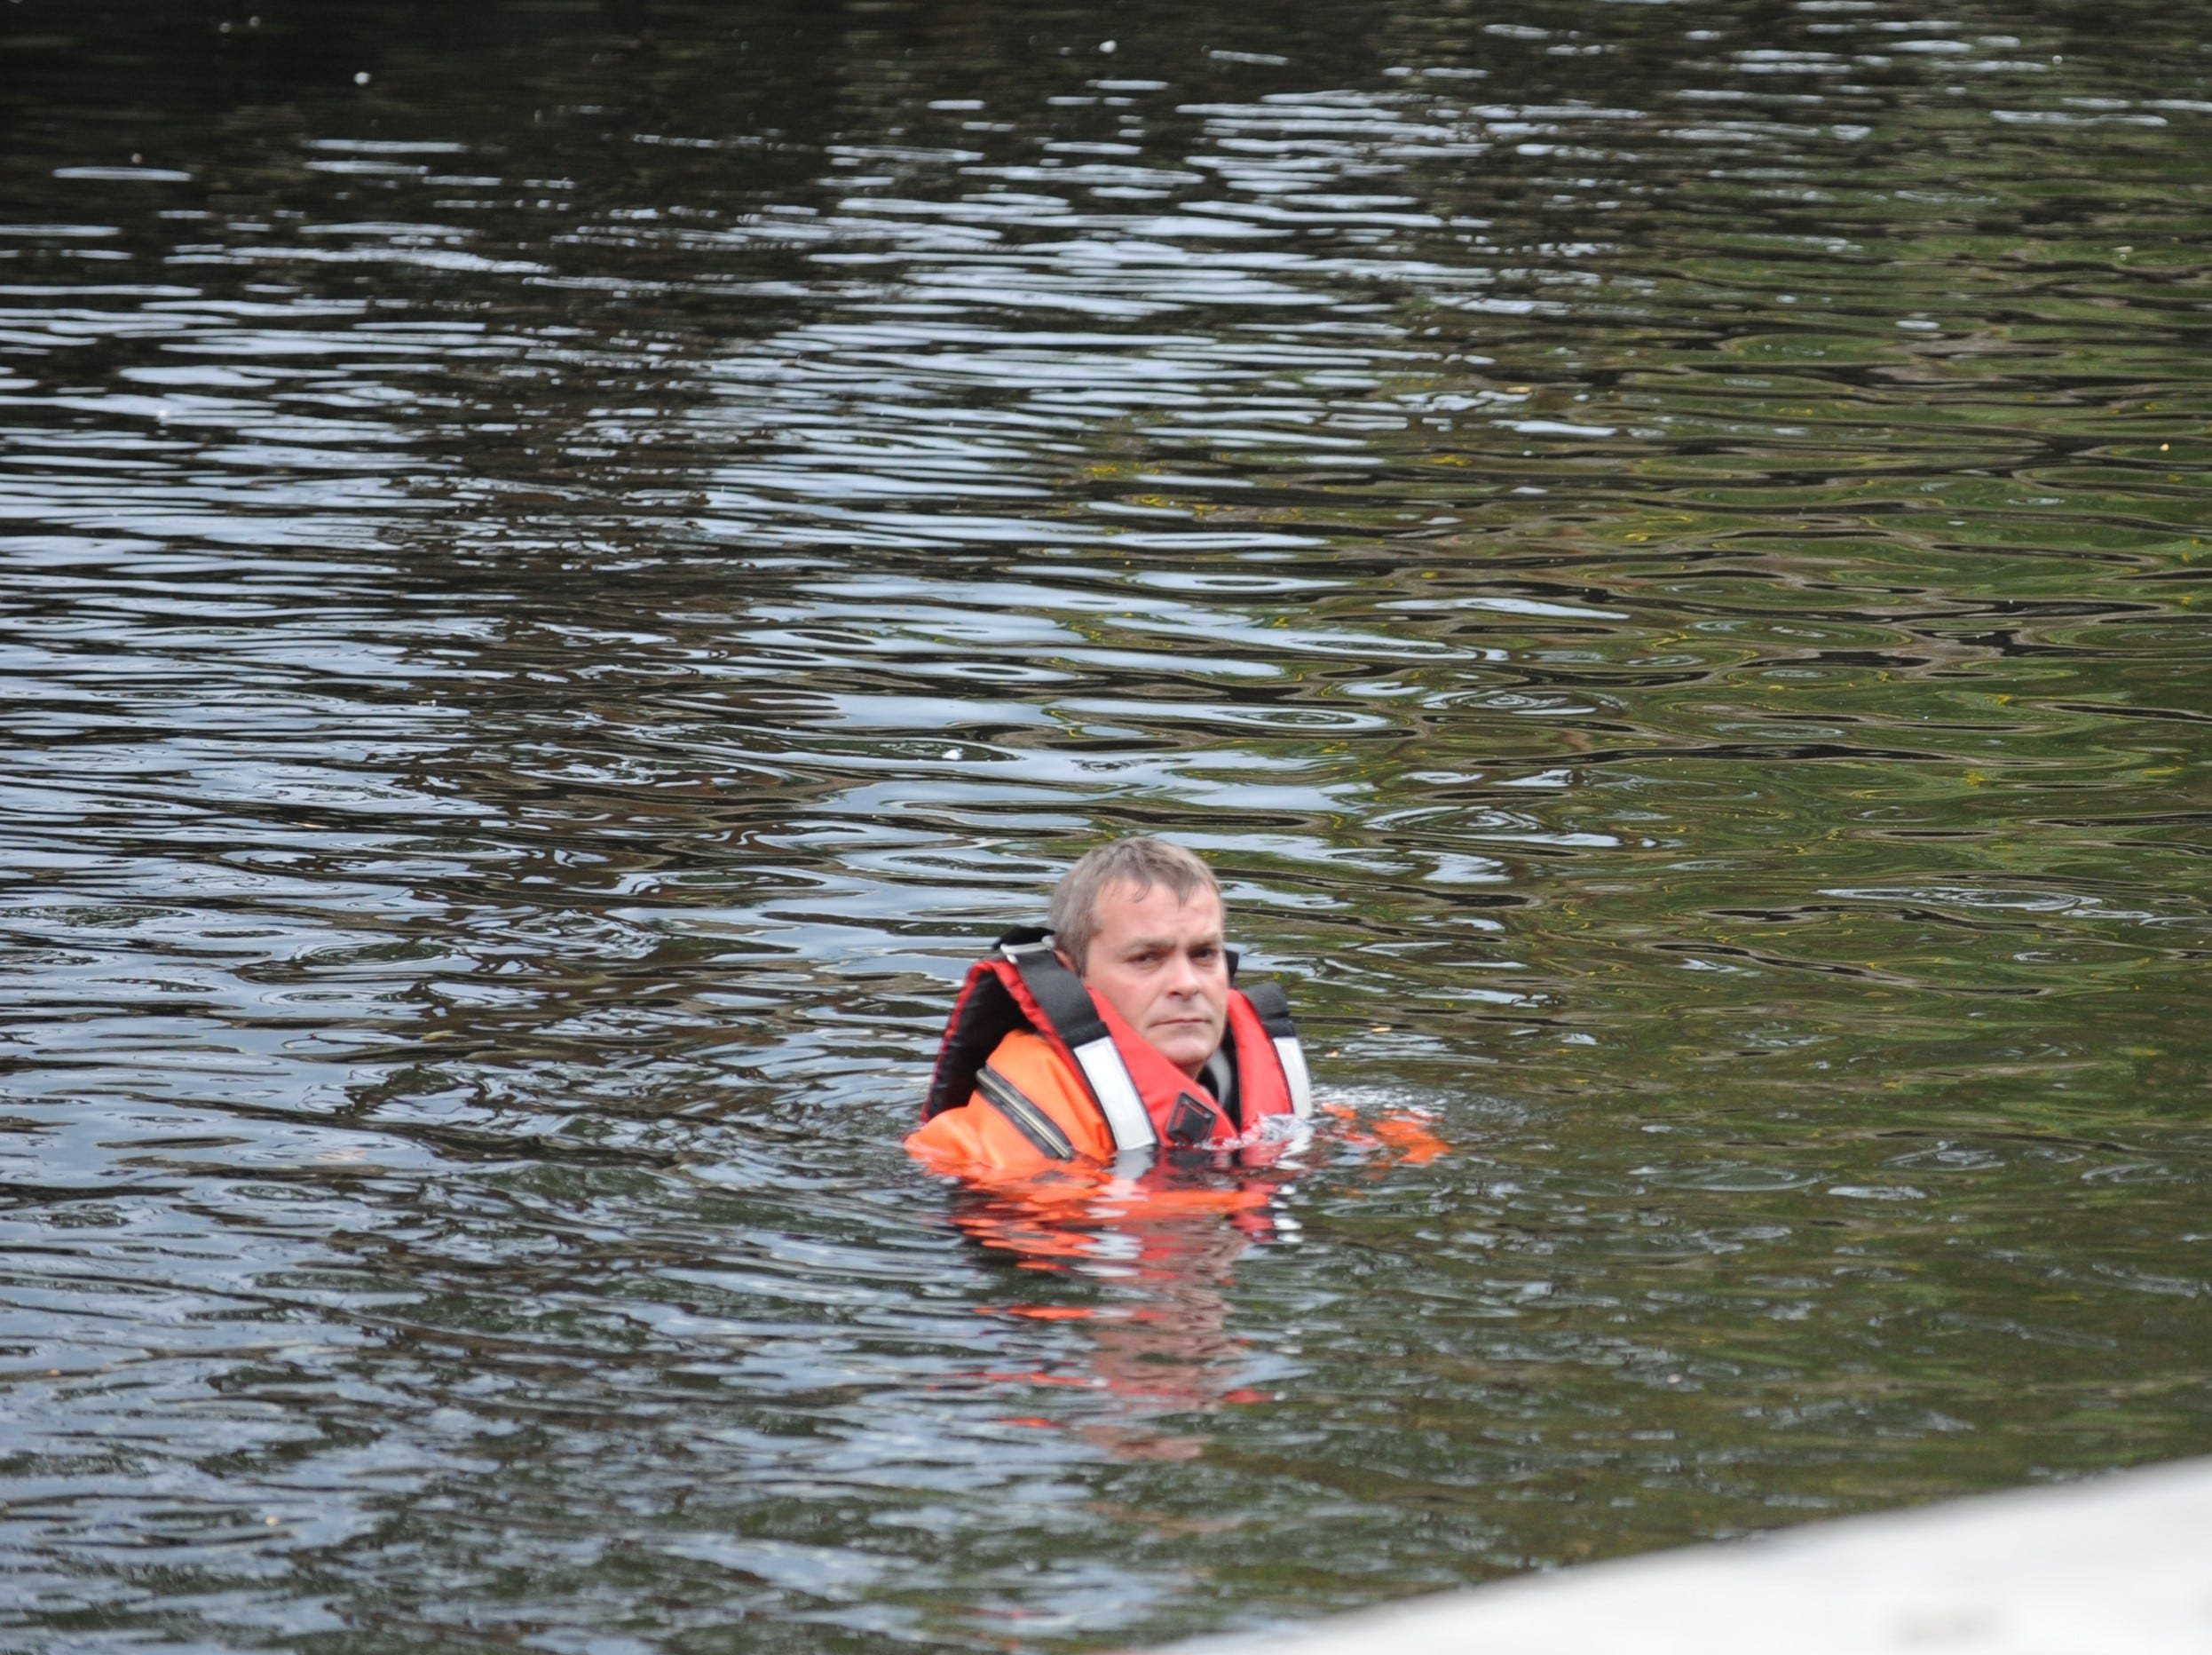 A diver investigating a body found in the Wicomico River.